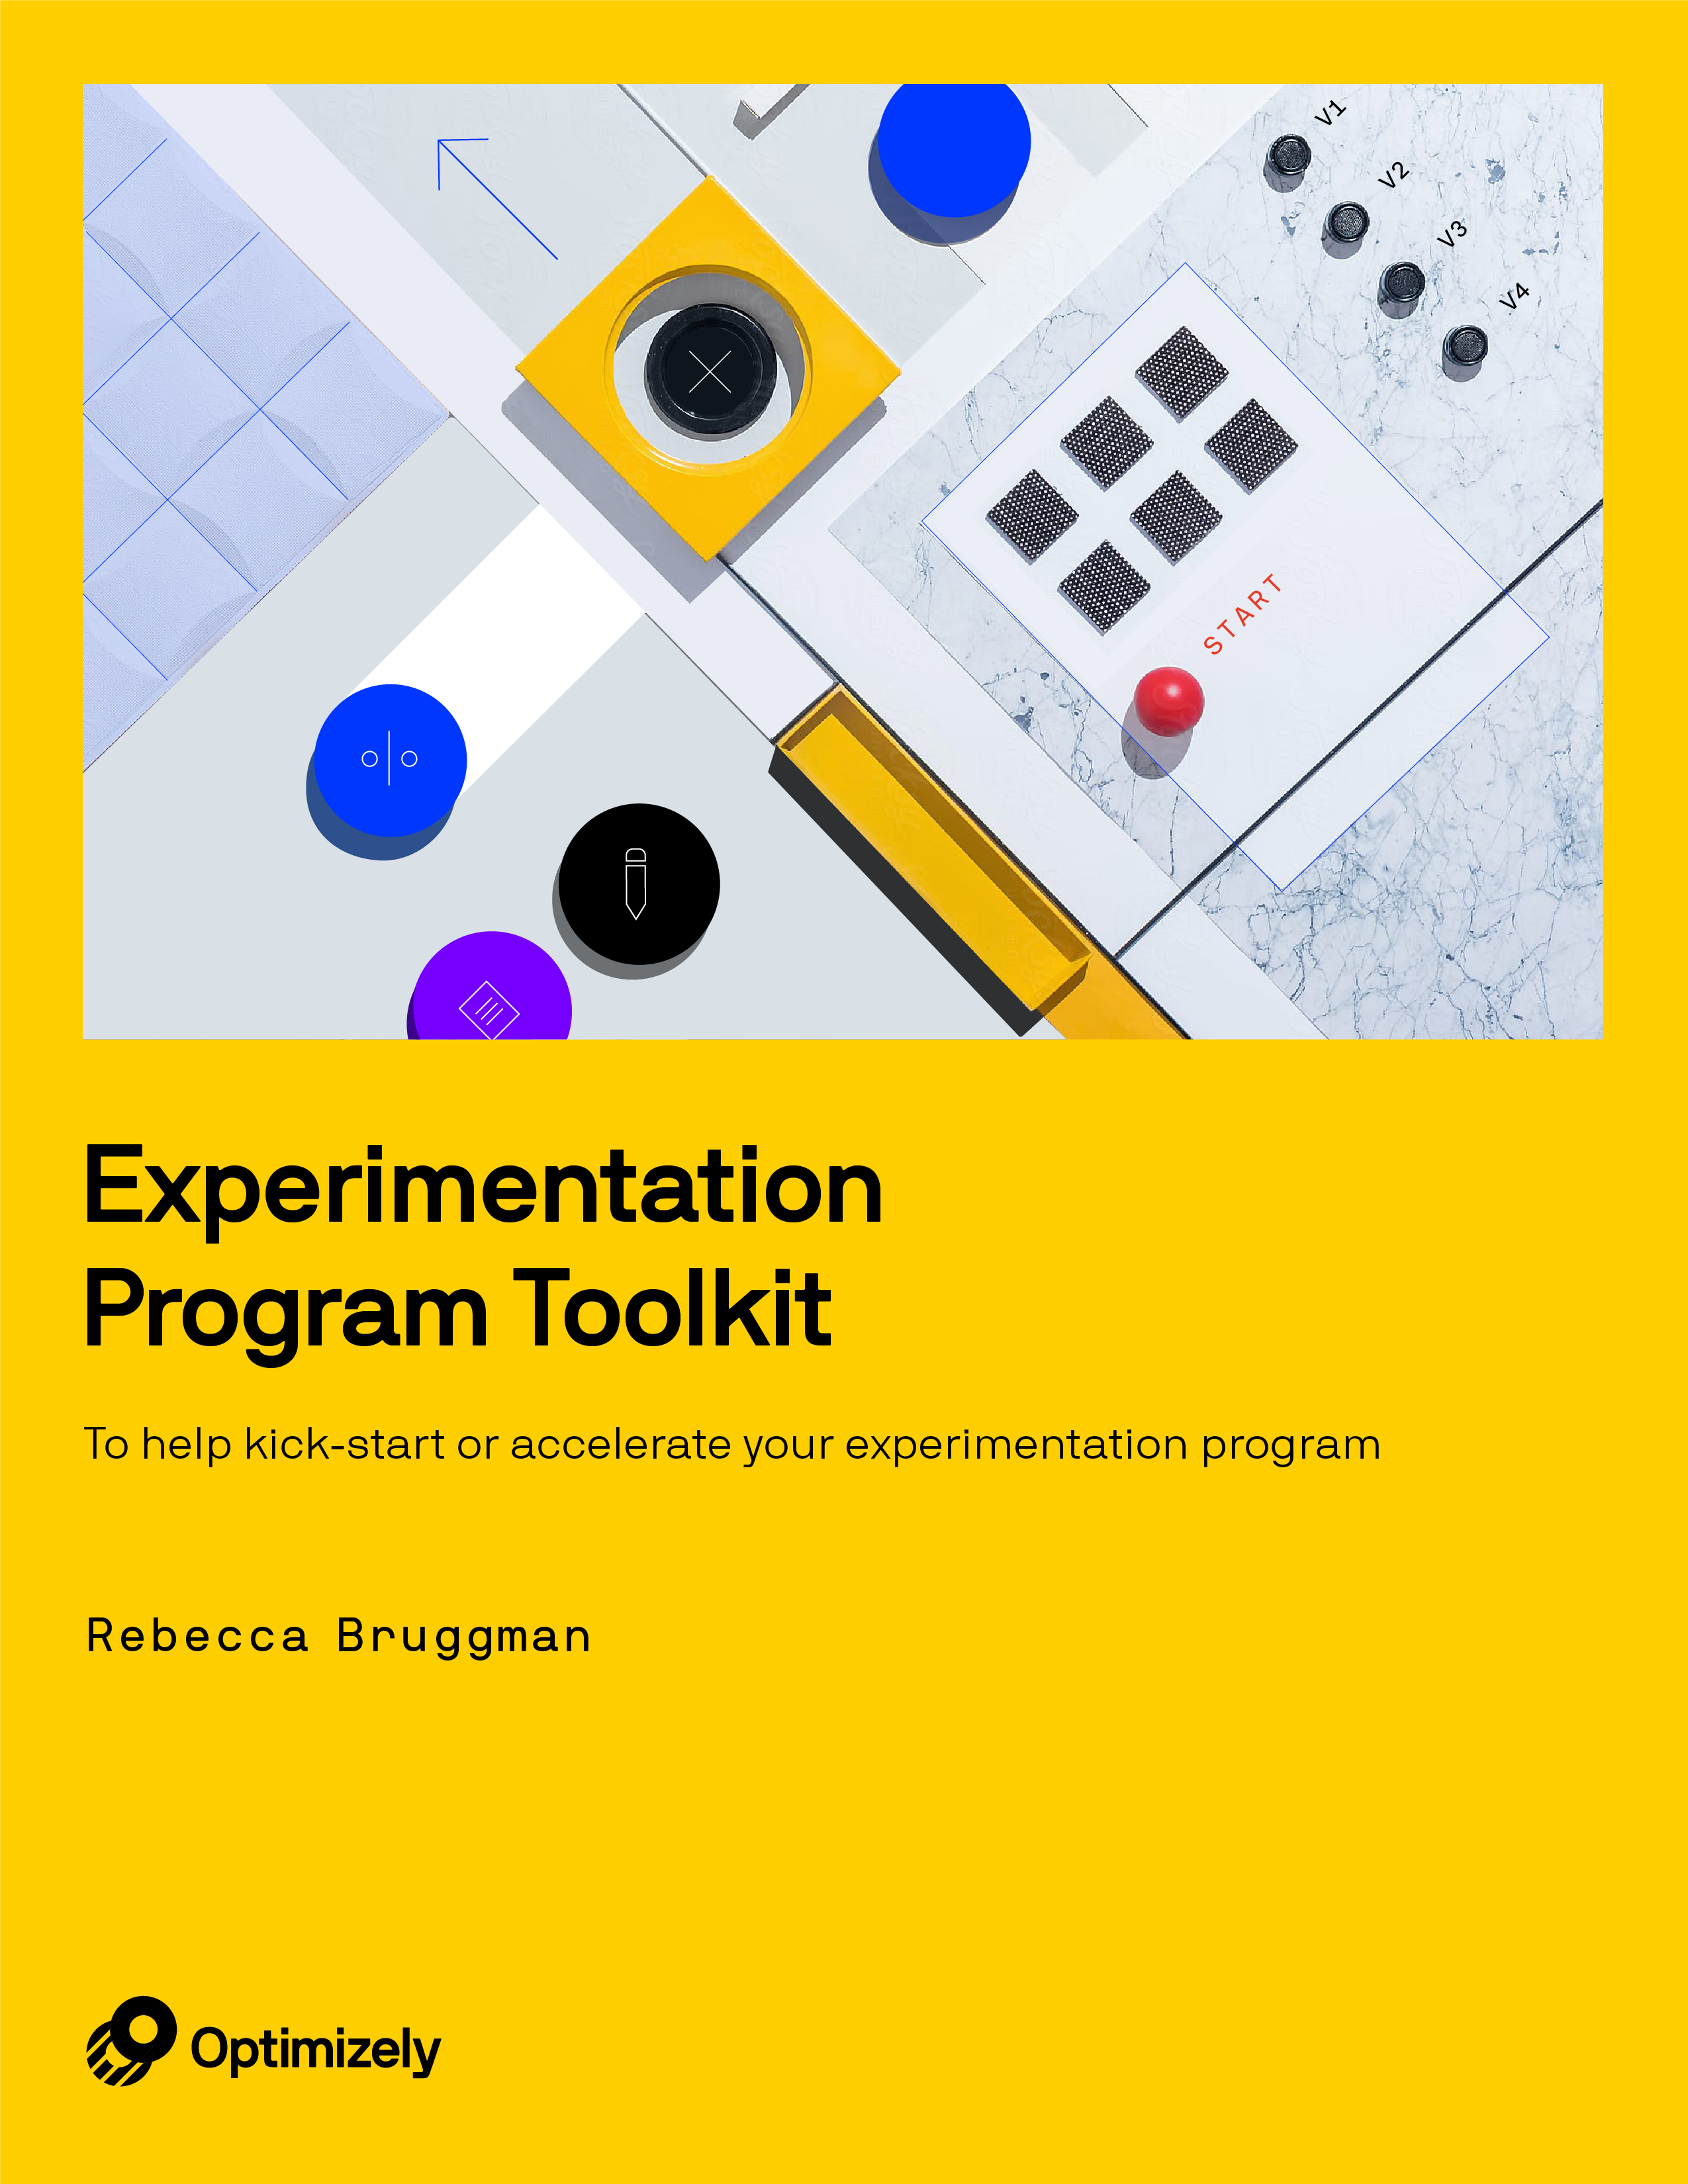 Experimentation Program Toolkit [Free Templates]